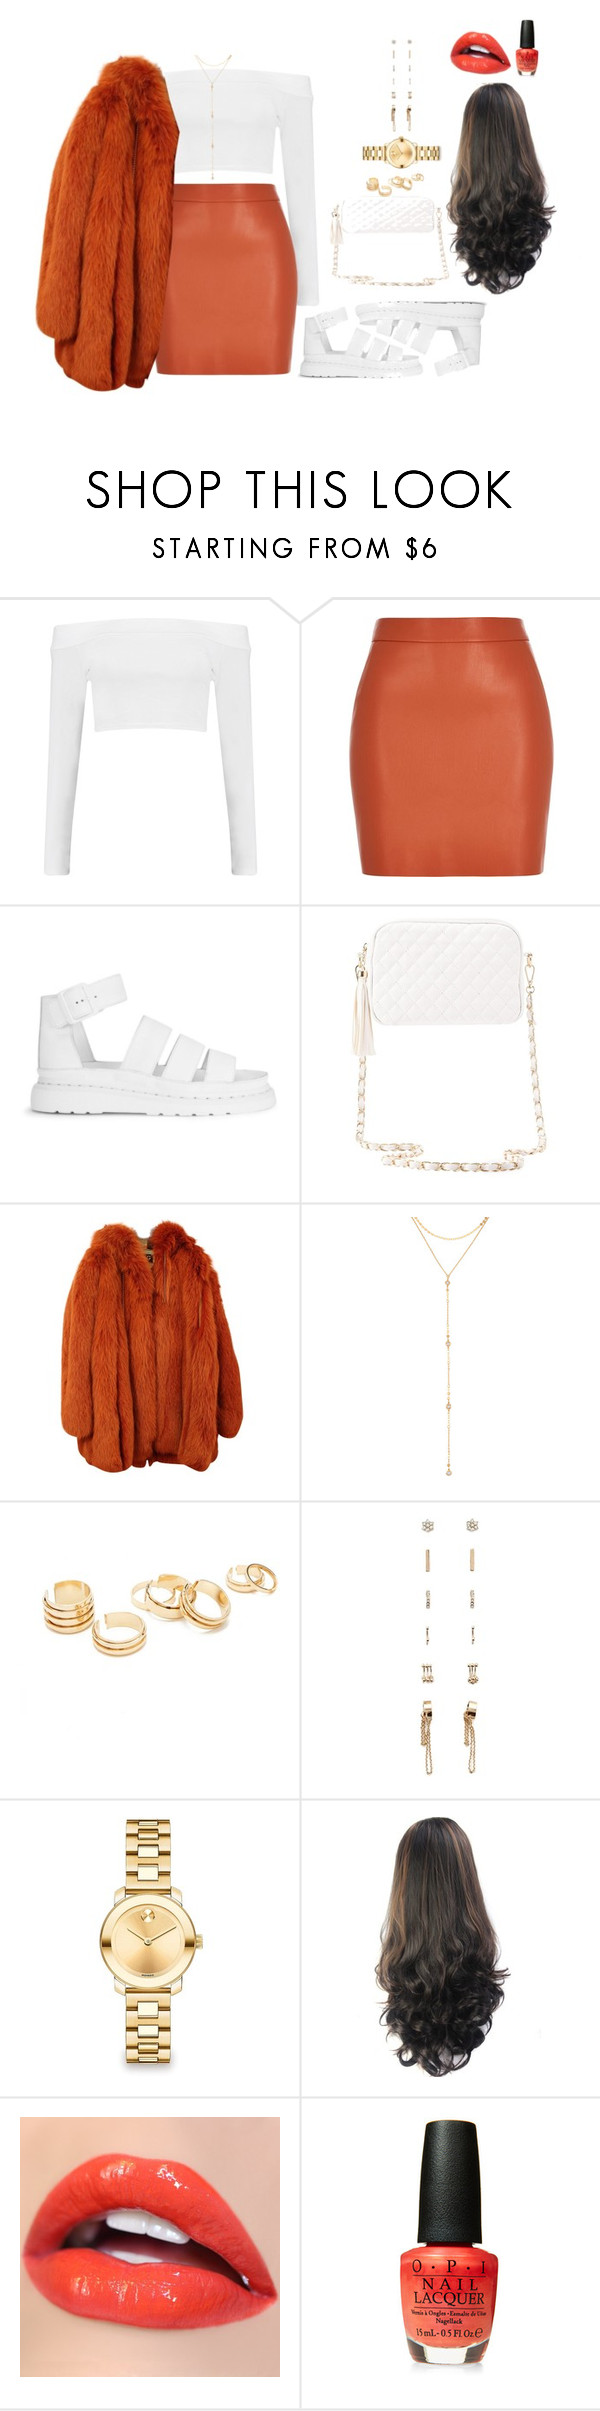 """""""Untitled #2618"""" by mrkr-lawson ❤ liked on Polyvore featuring Boohoo, River Island, Dr. Martens, Charlotte Russe, Dolce&Gabbana, Fragments, Forever 21 and Movado"""